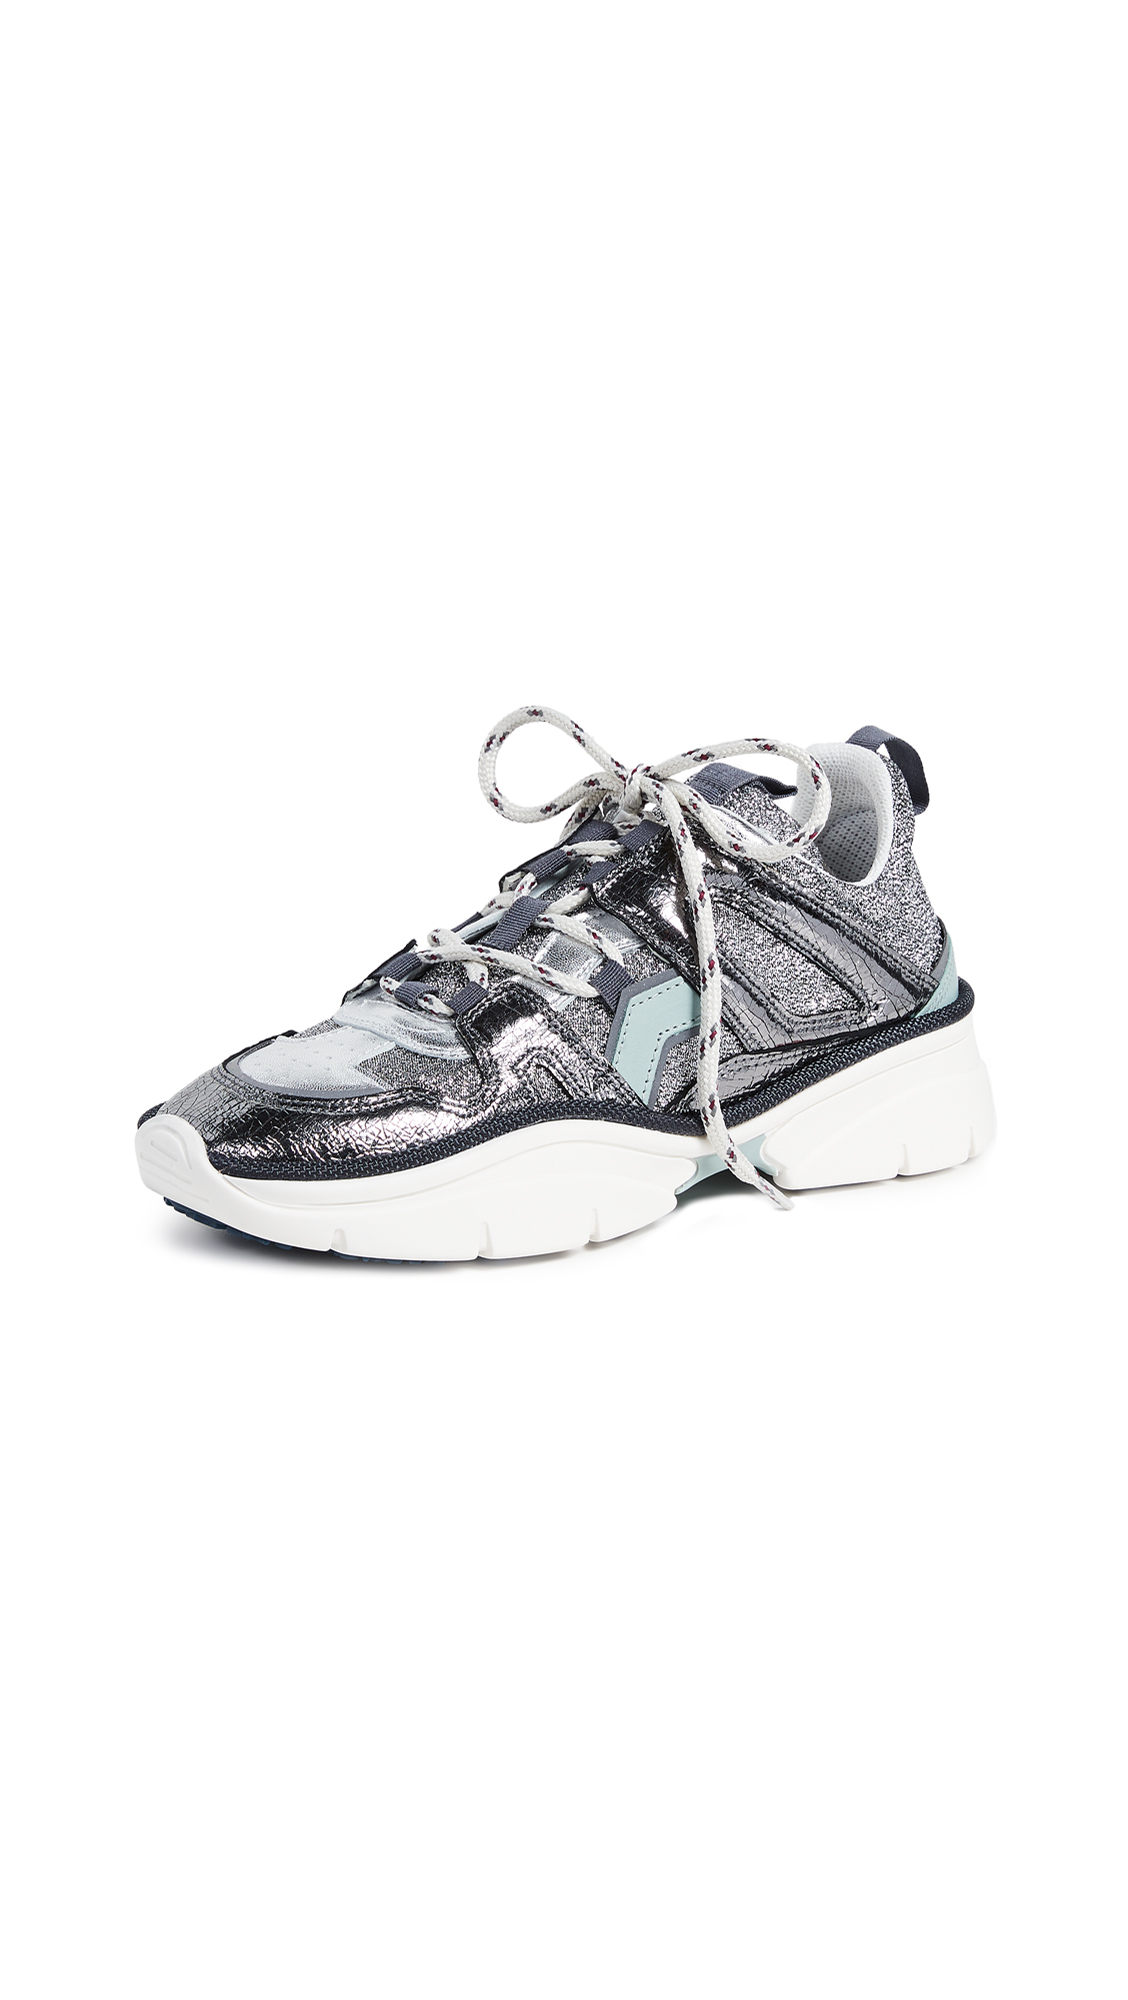 Isabel Marant Kindsay Sneakers - Silver